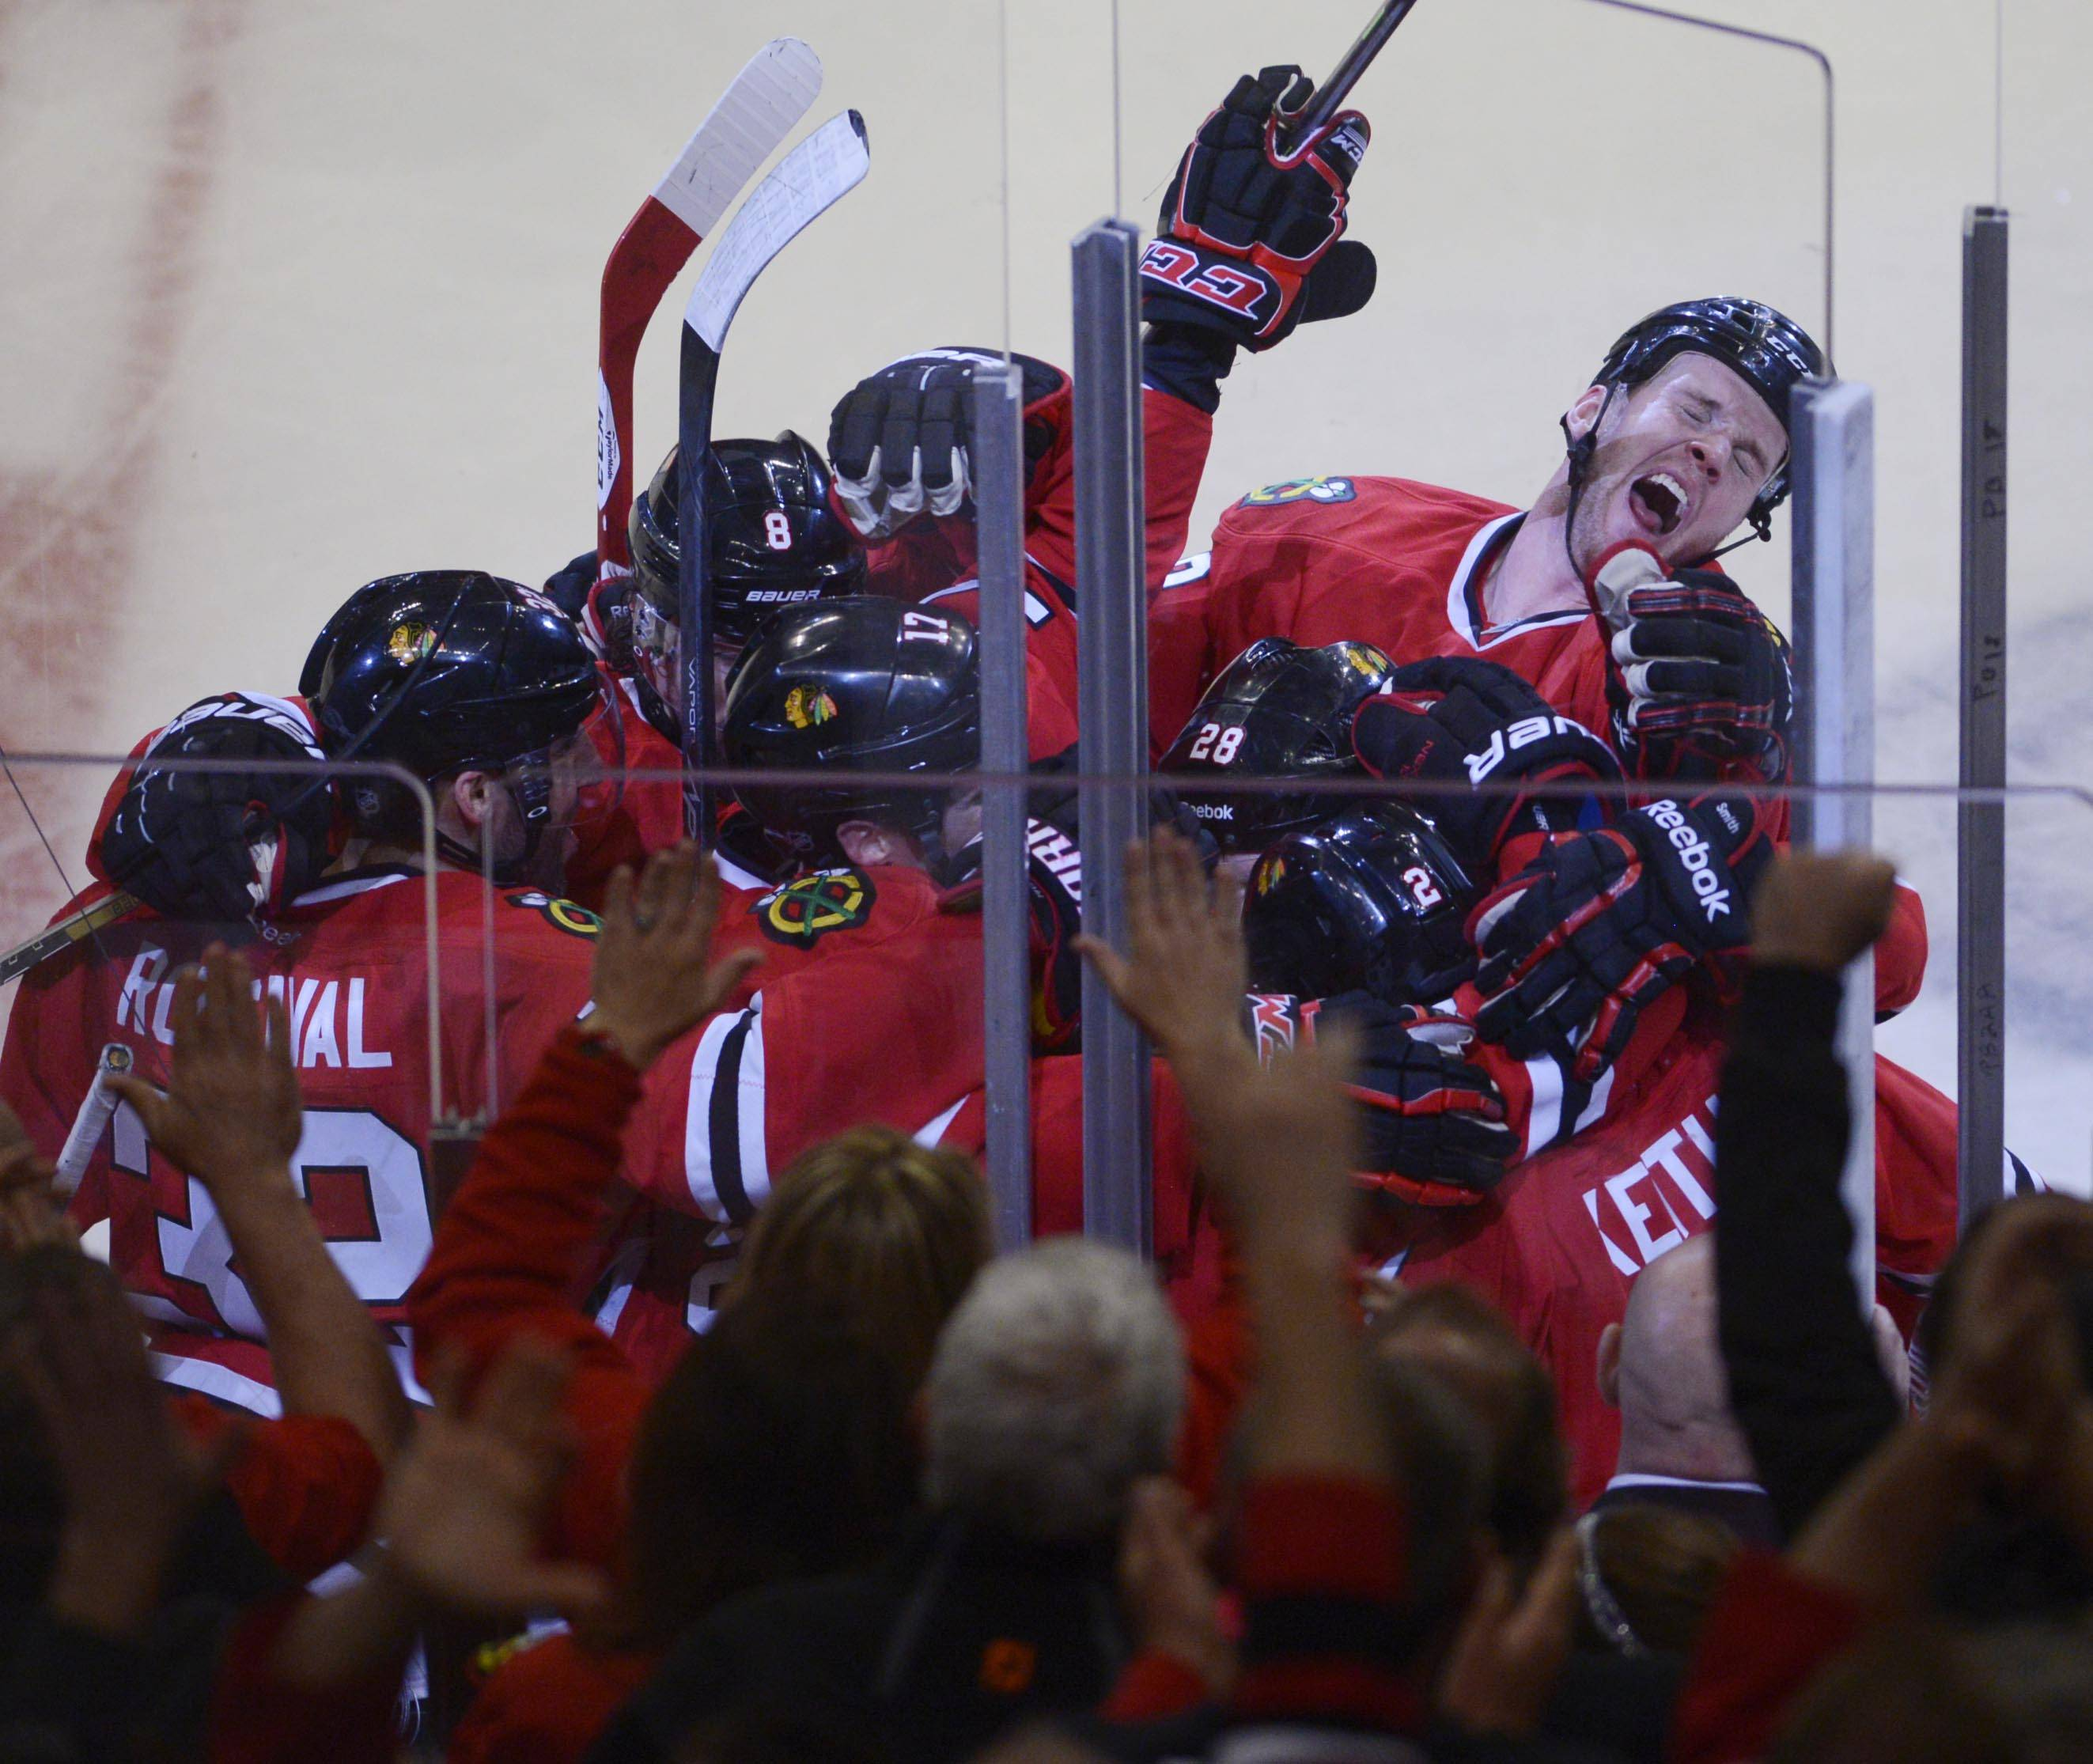 Chicago Blackhawks players celebrate the overtime goal to win and even the series.